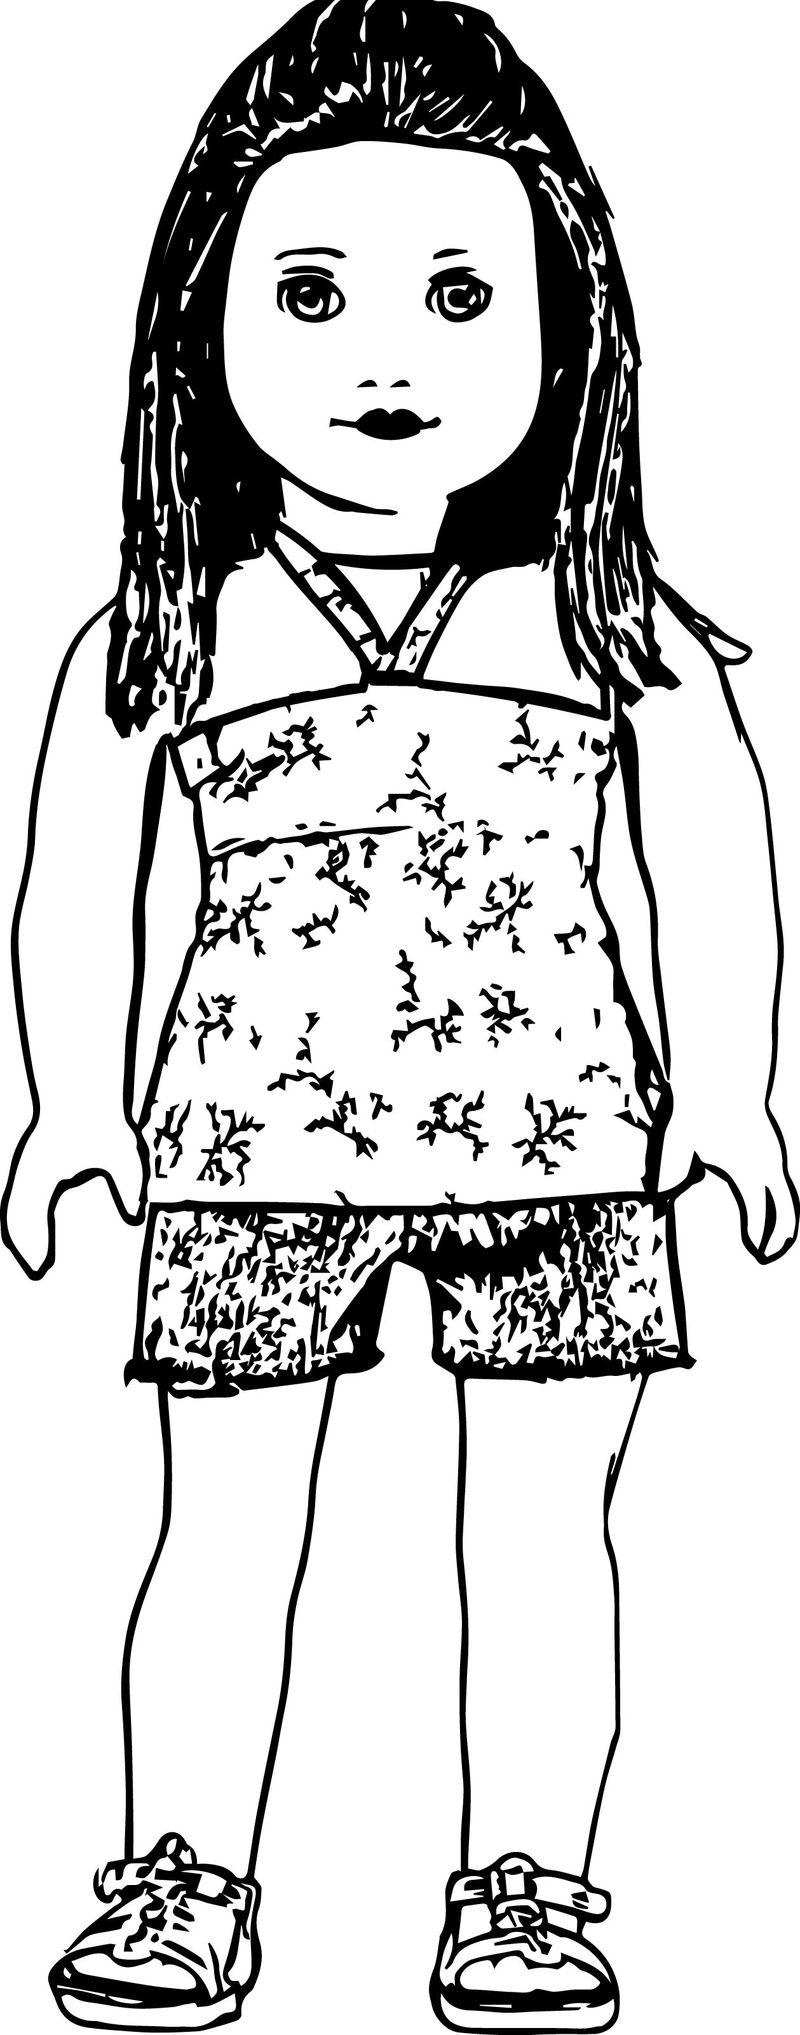 american girl coloring page american girl doll coloring pages at getcoloringscom girl page american coloring